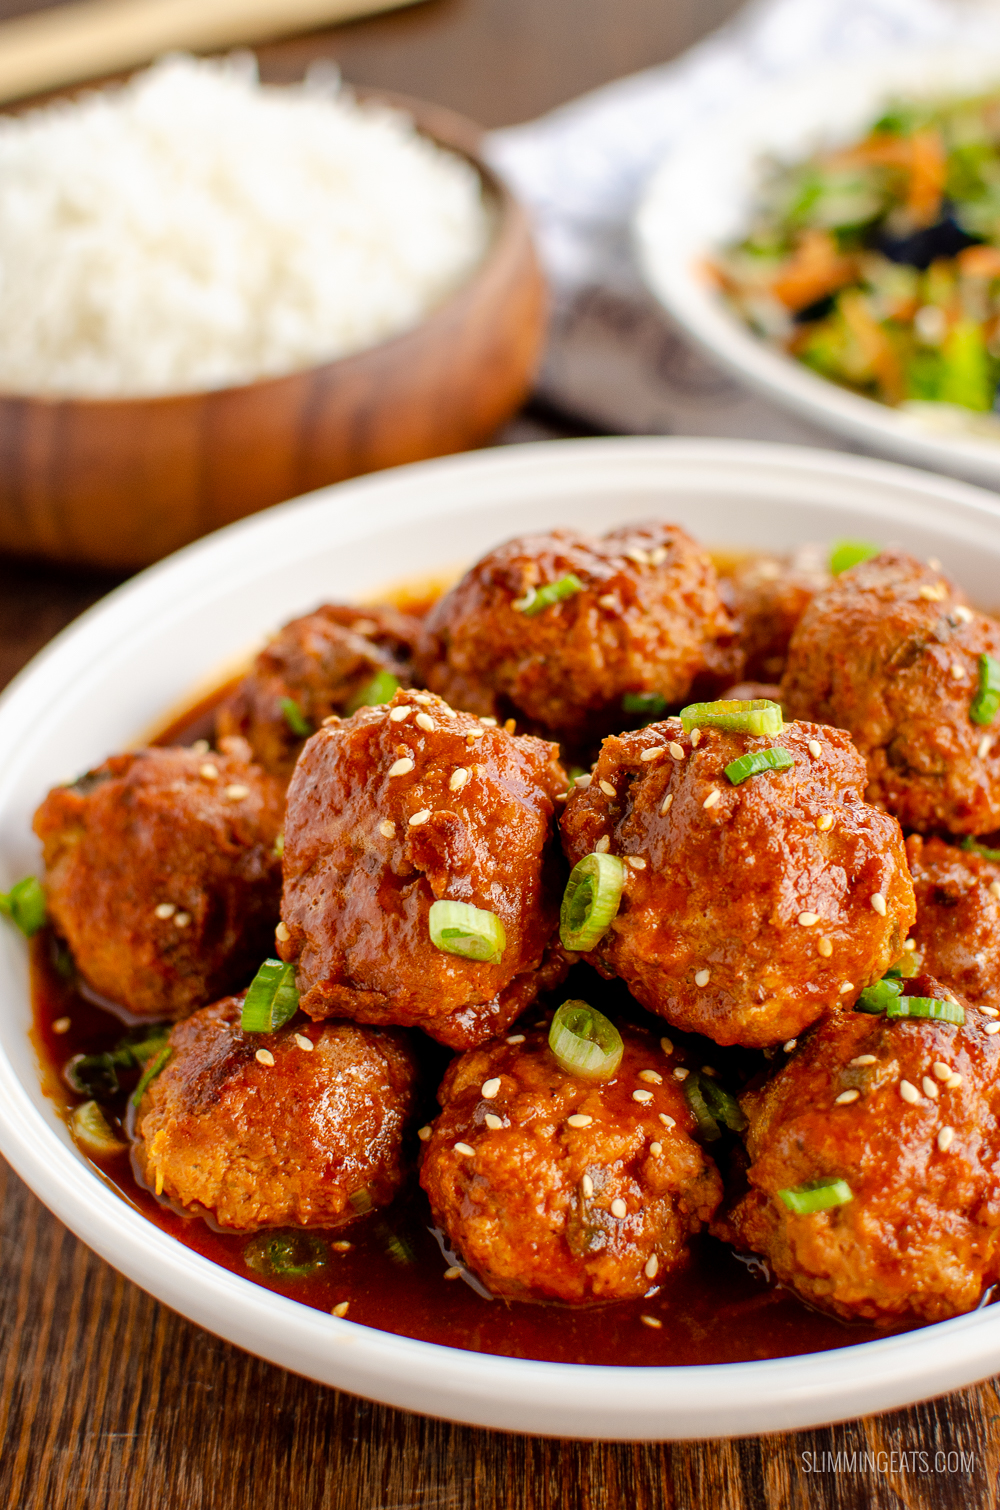 Firecracker Chicken Meatballs in white bowl sprinkled with spring onion and sesame seeds